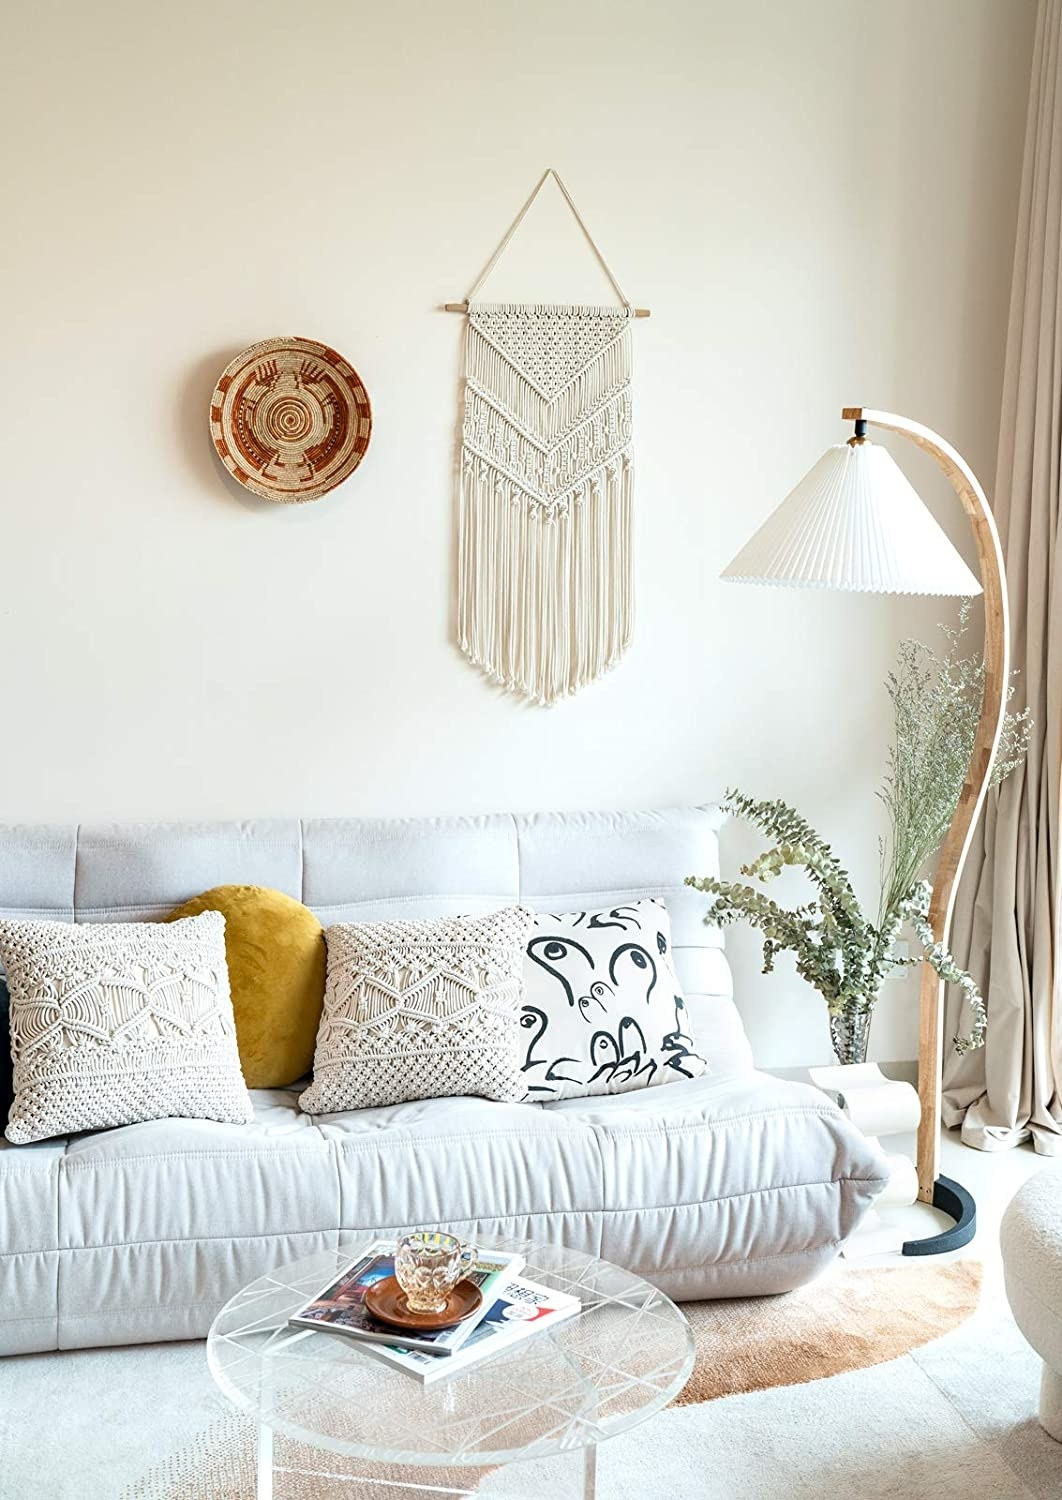 The tapestry hanging above a sofa